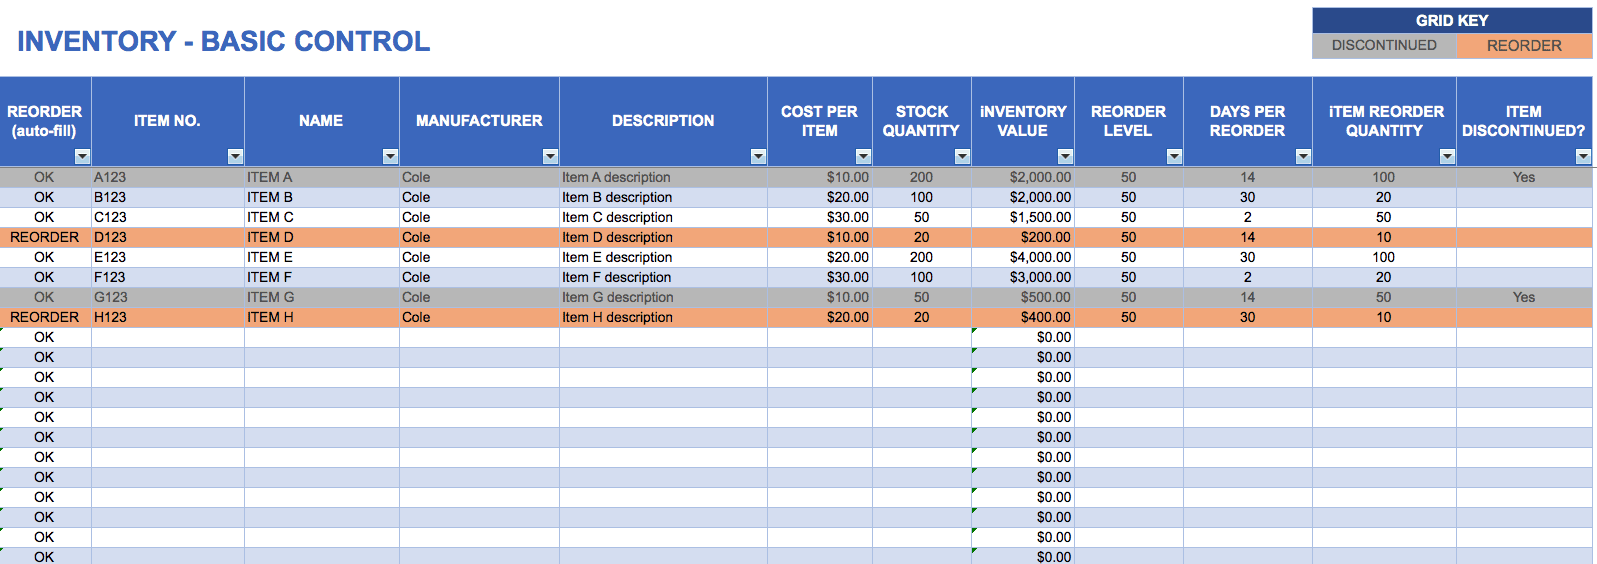 Sales Tracking Template Sales Tracking Spreadsheet Template Spreadsheet Templates for Busines Spreadsheet Templates for Busines Applicant Tracking Spreadsheet Template